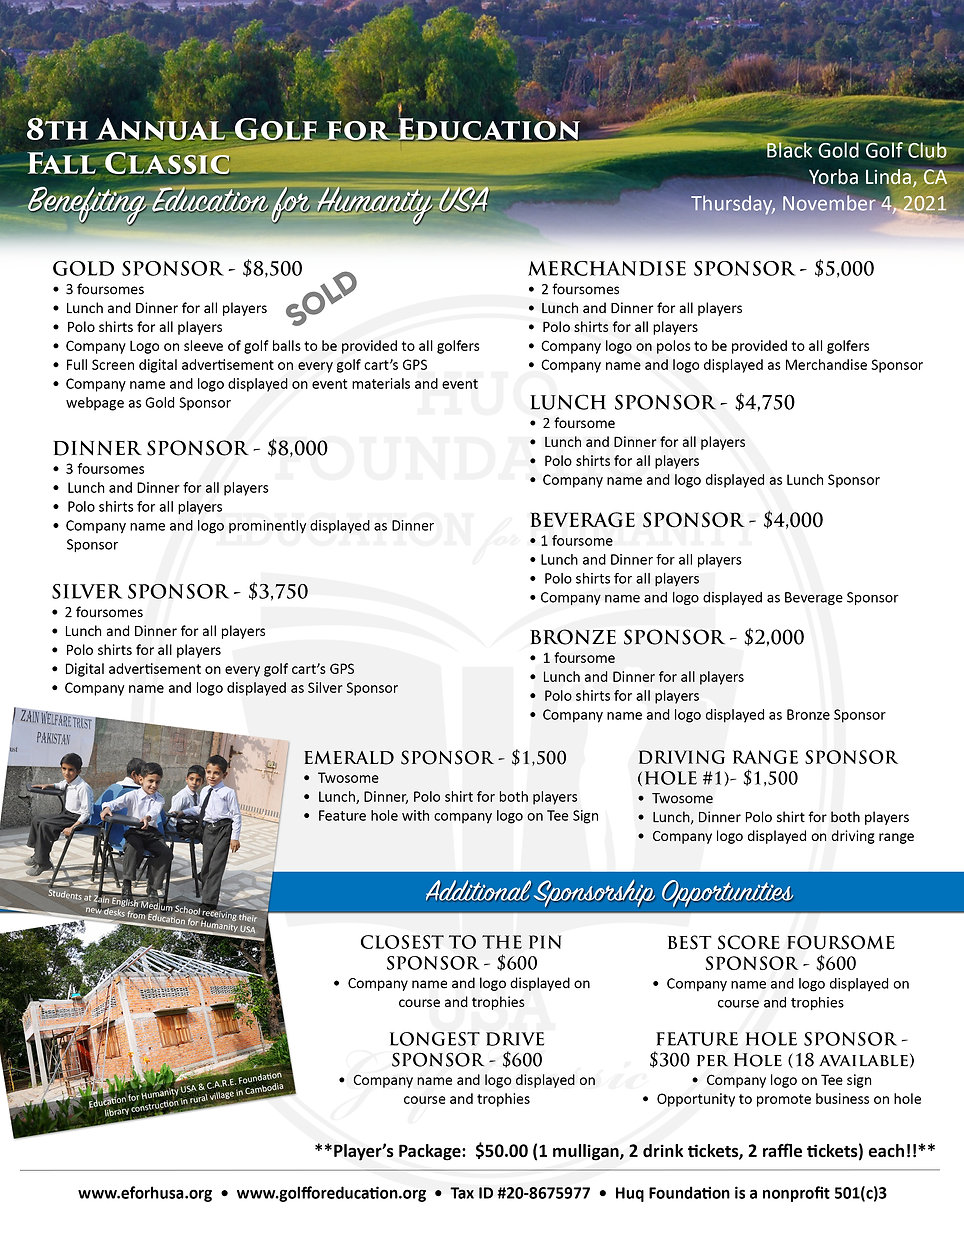 Golf for Education Flyer_Fall_2021.jpg